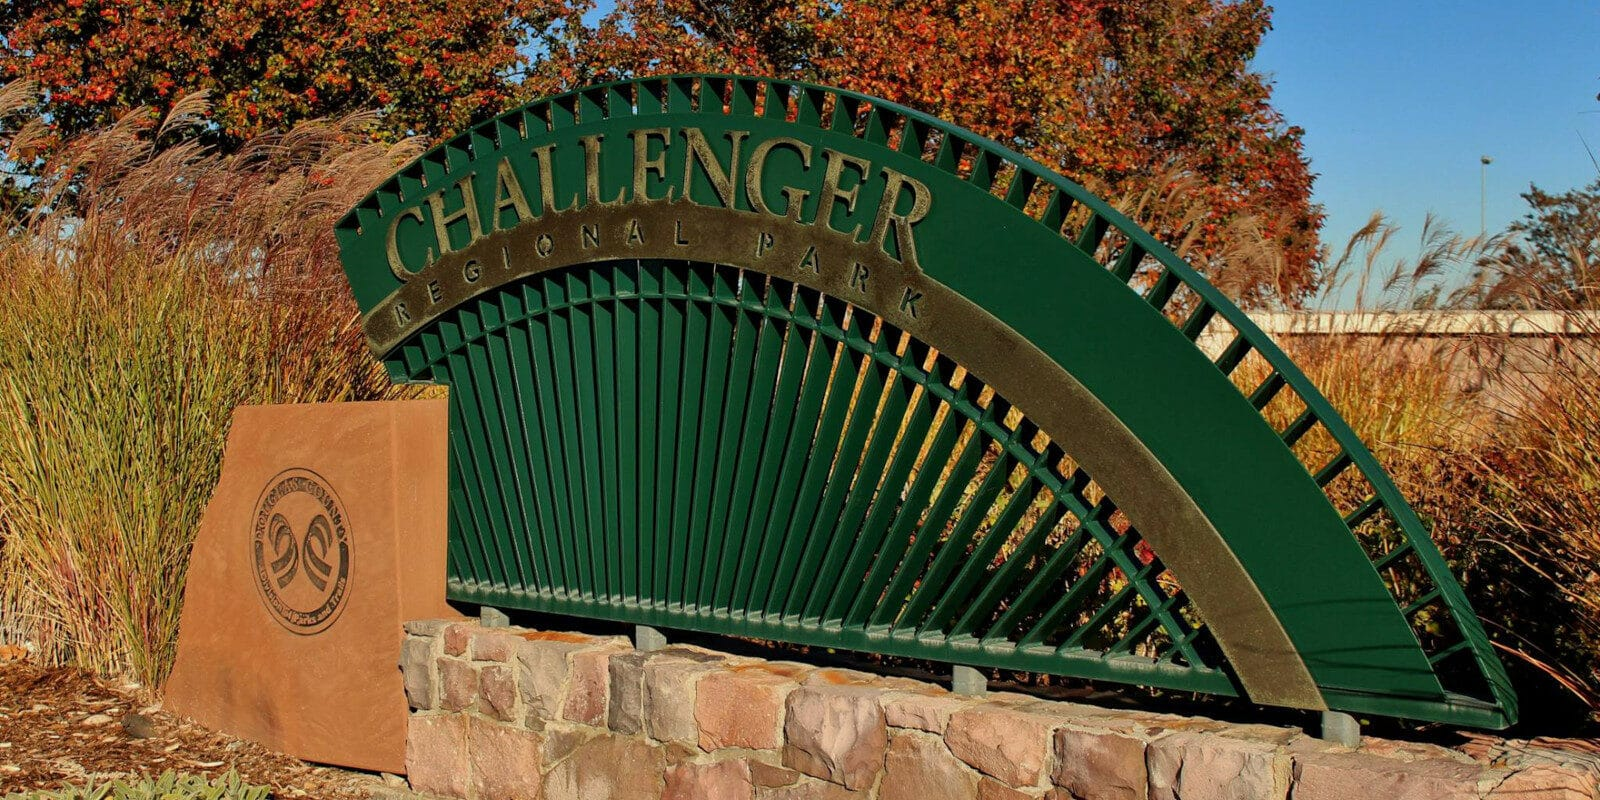 Image of the sign for the Challenger Regional Park in Parker, Colorado